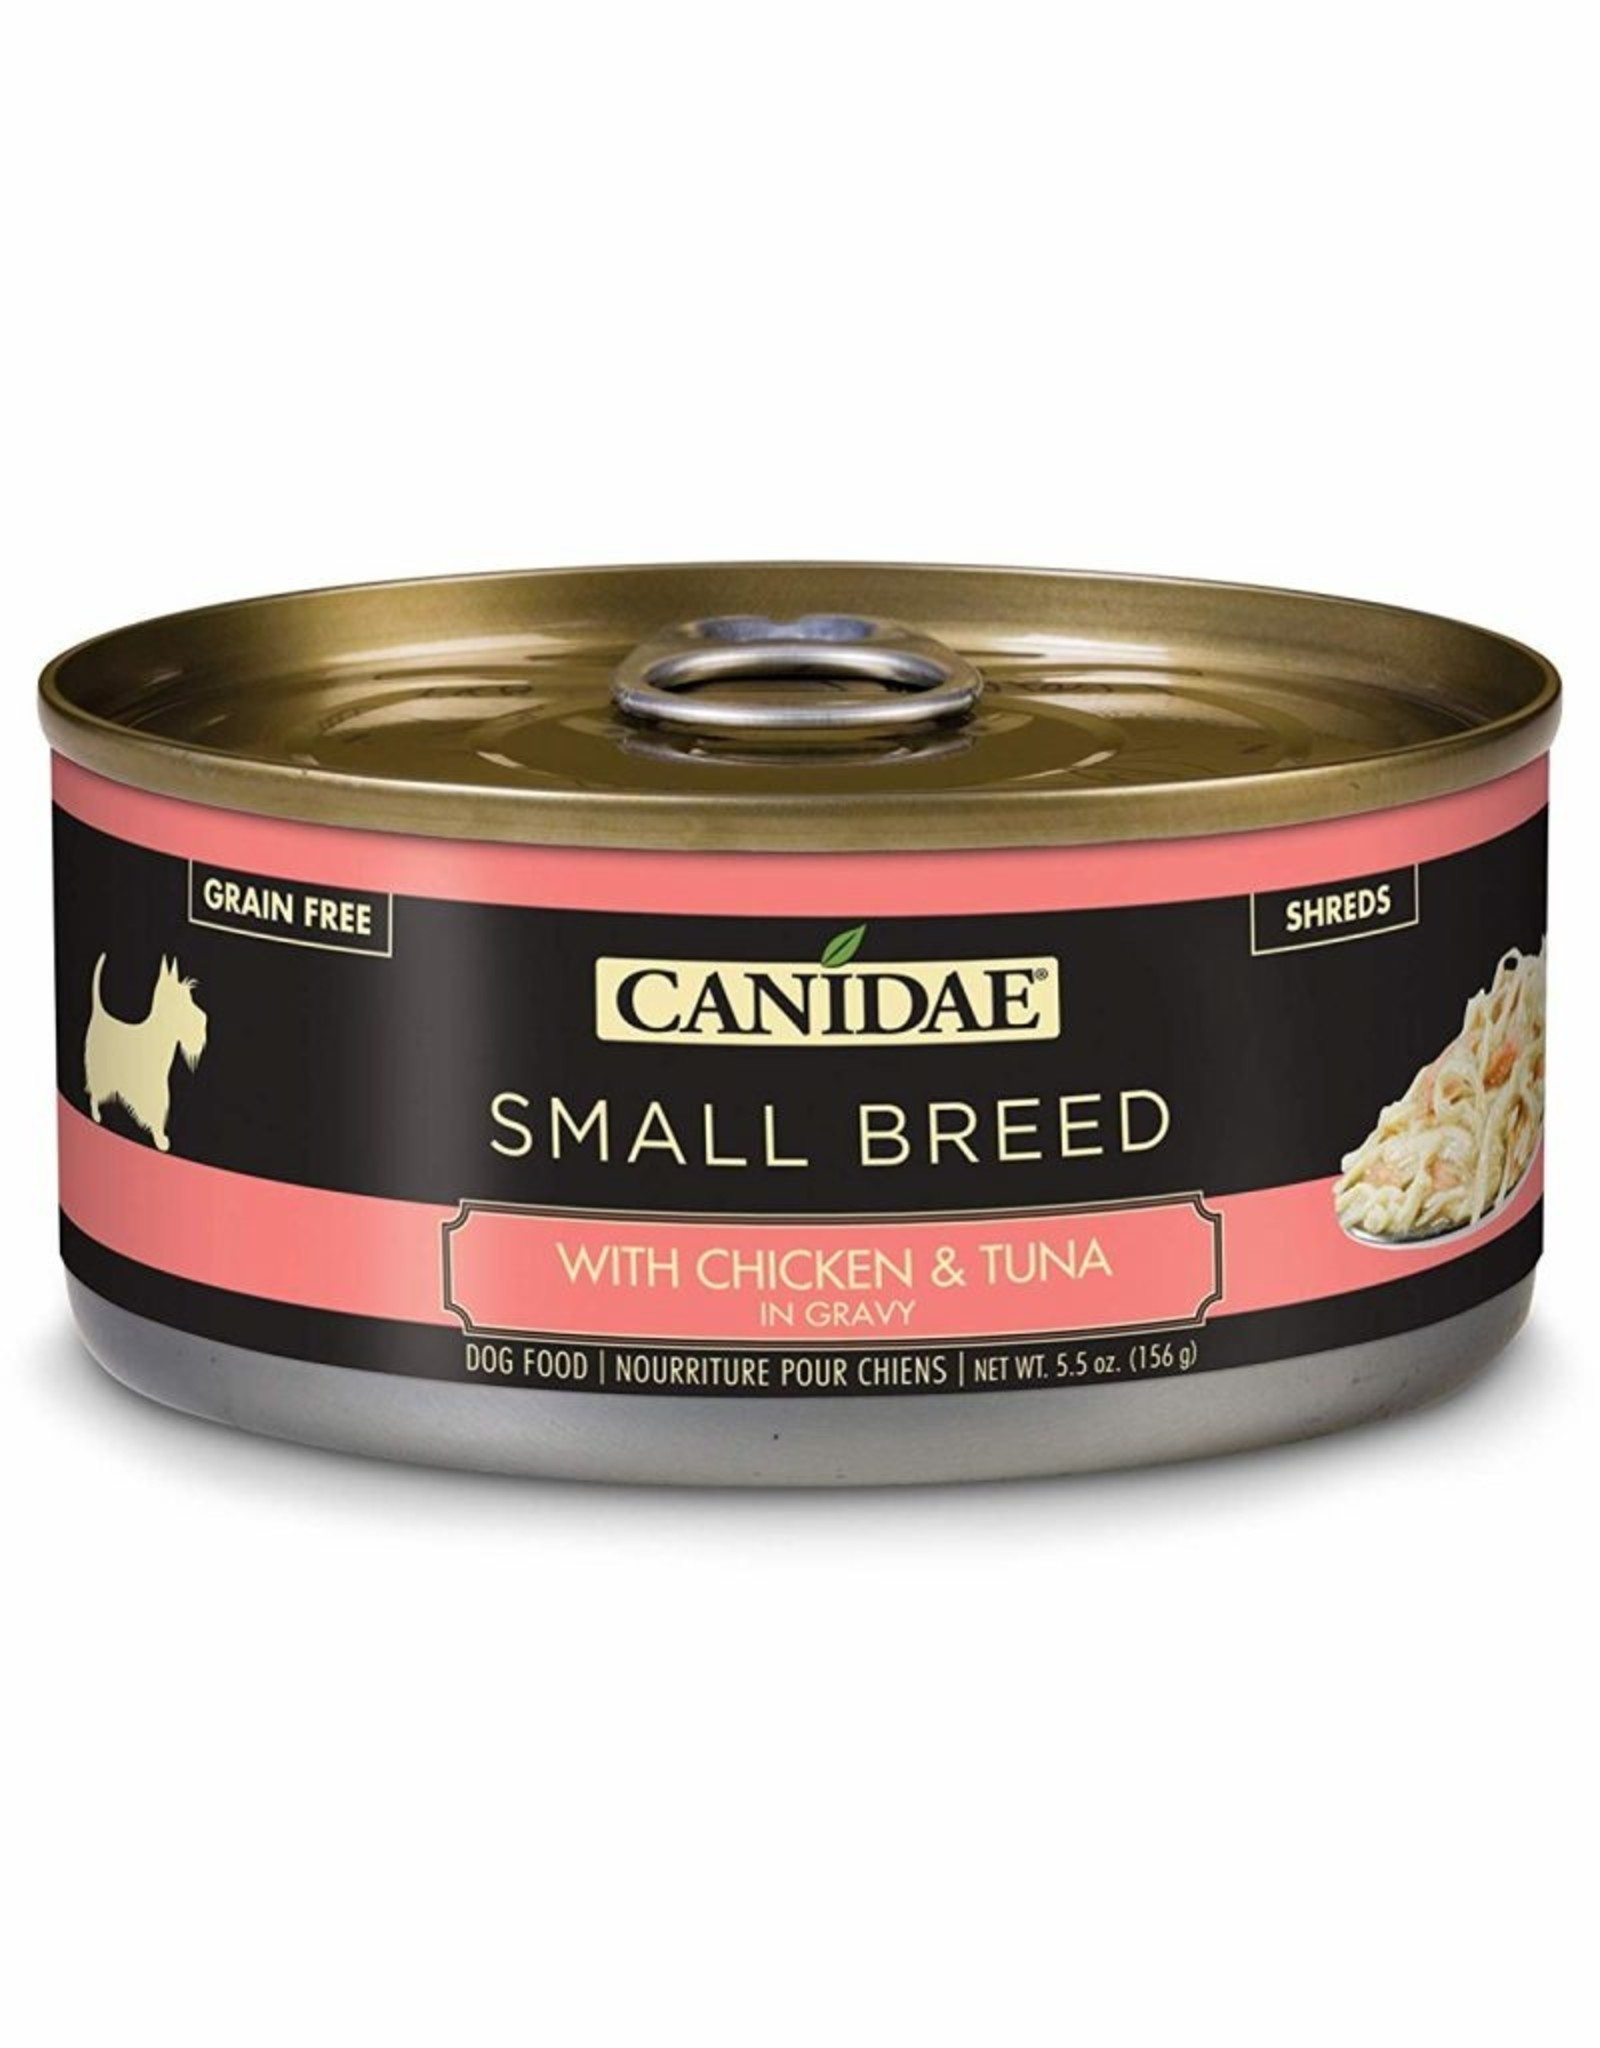 CANIDAE PET FOODS CANIDAE CAN DOG SMALL BREED CHICKEN, TUNA IN GRAVY 5.5OZ